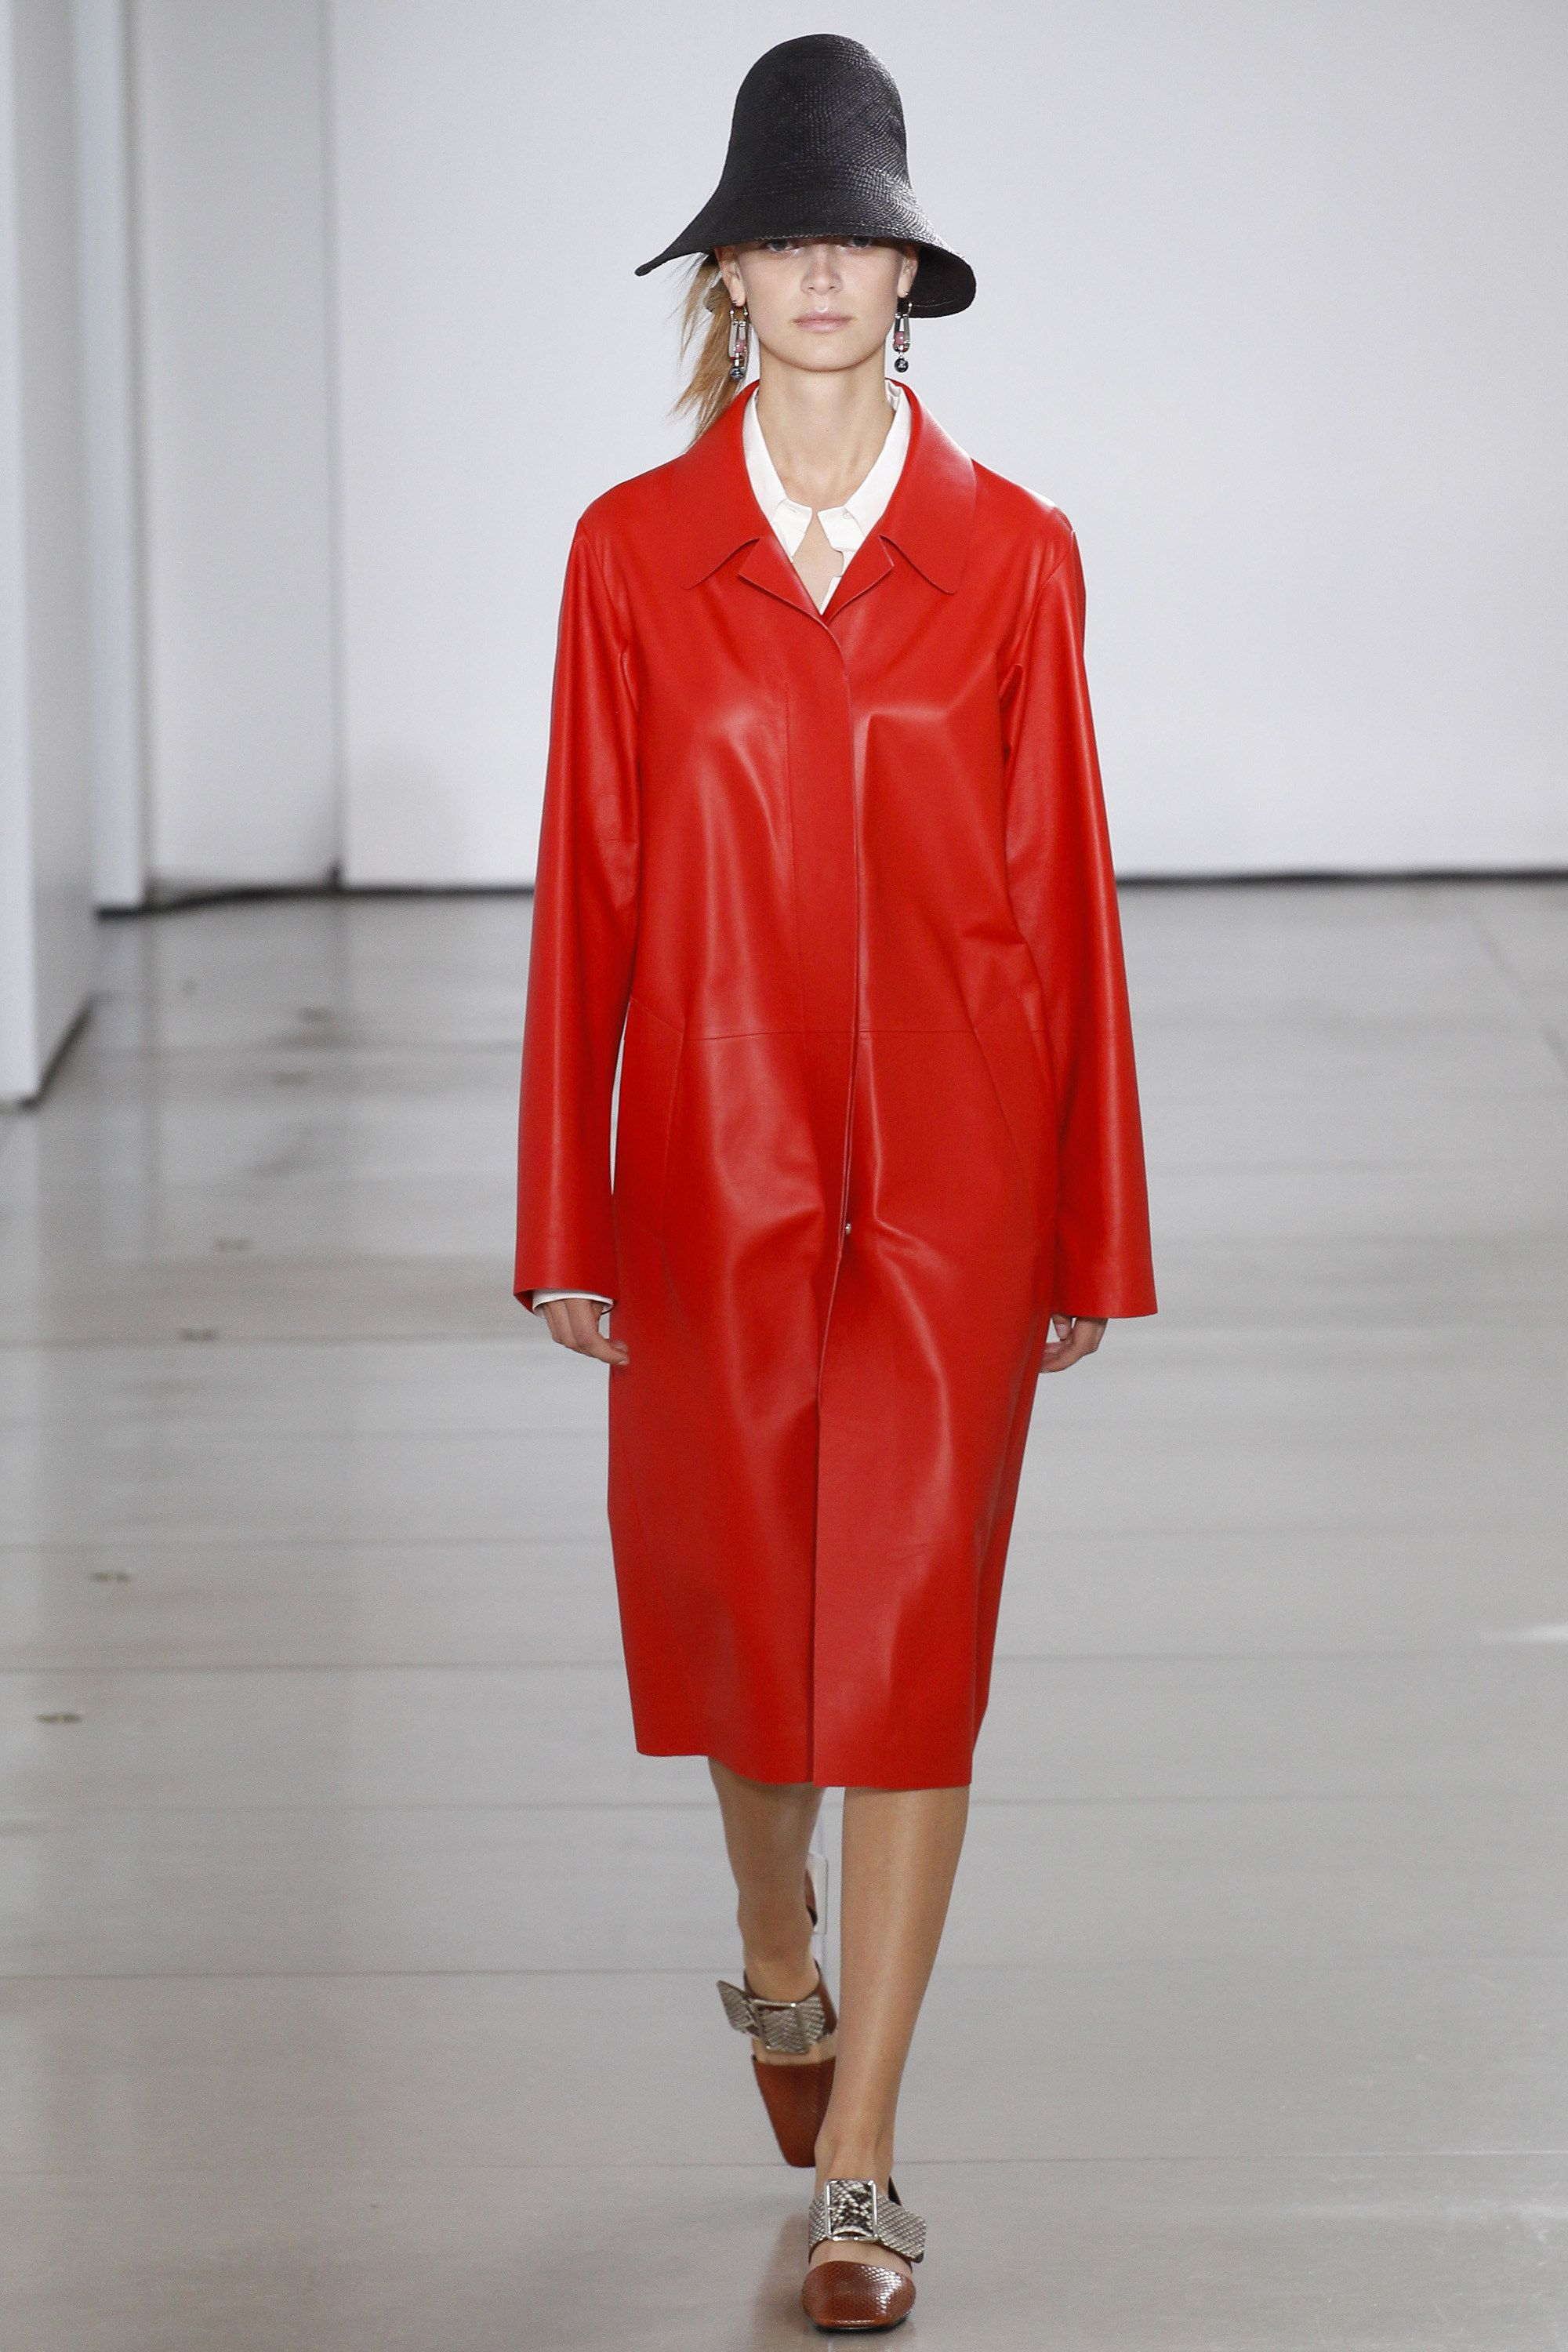 Jil Sander Spring 2016 Ready-to-Wear Collection Photos - Vogue hawanim.com